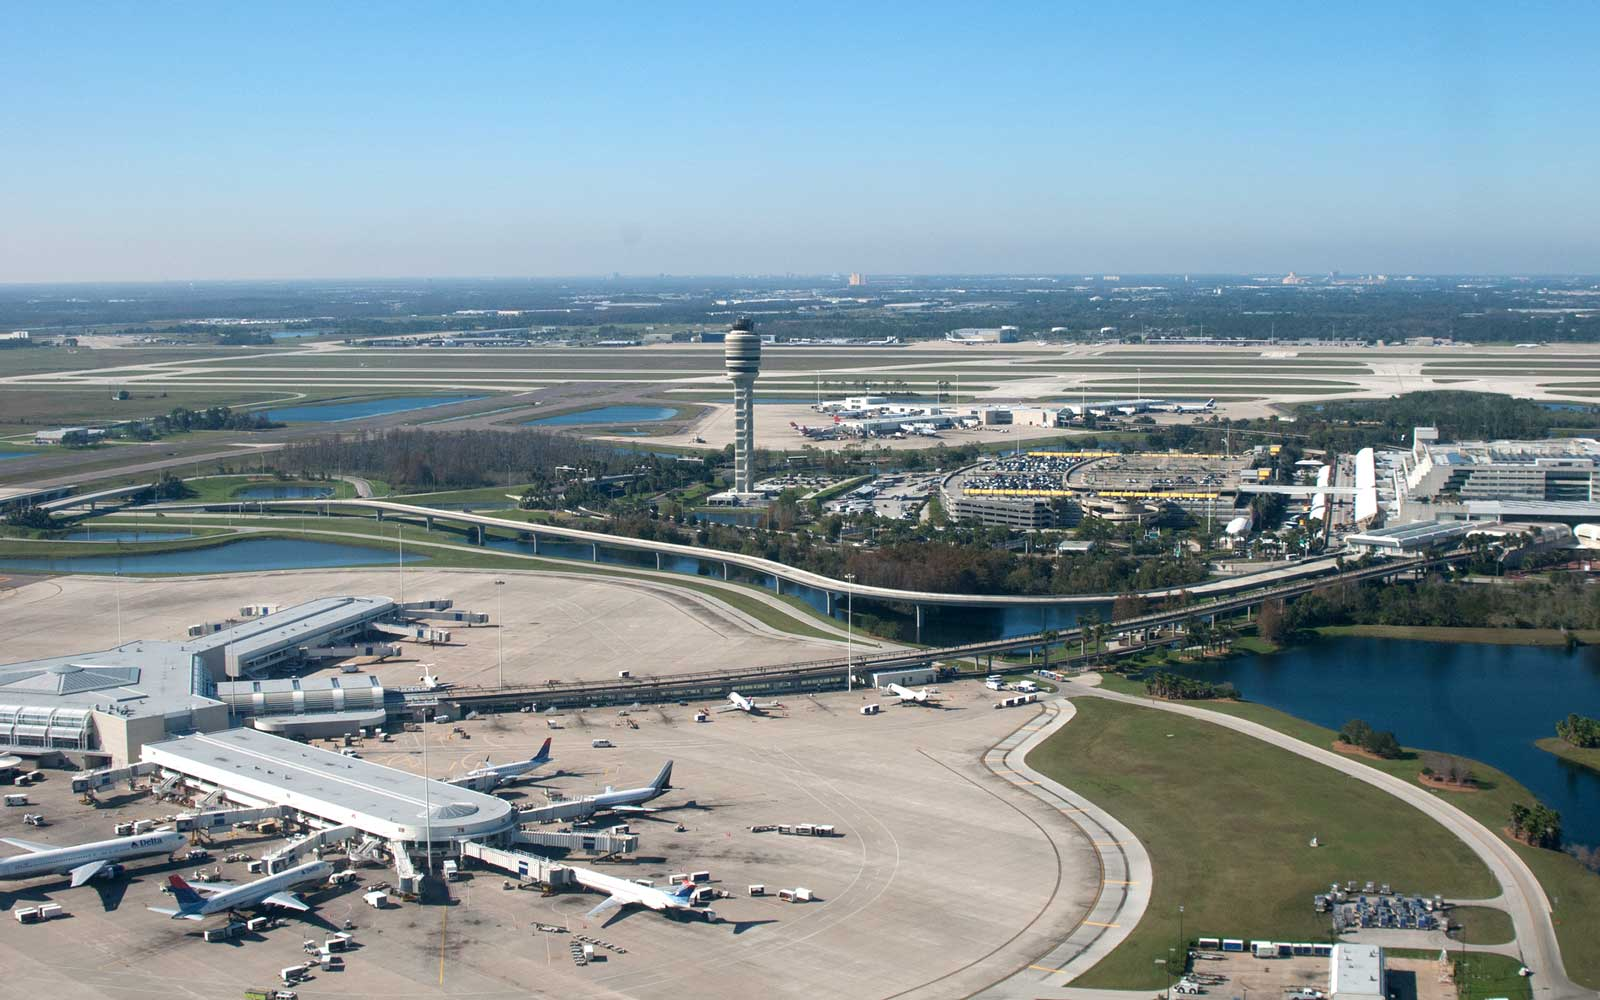 Exploding Lithium-ion Camera Battery Causes Panic and Delays at Orlando International Airport